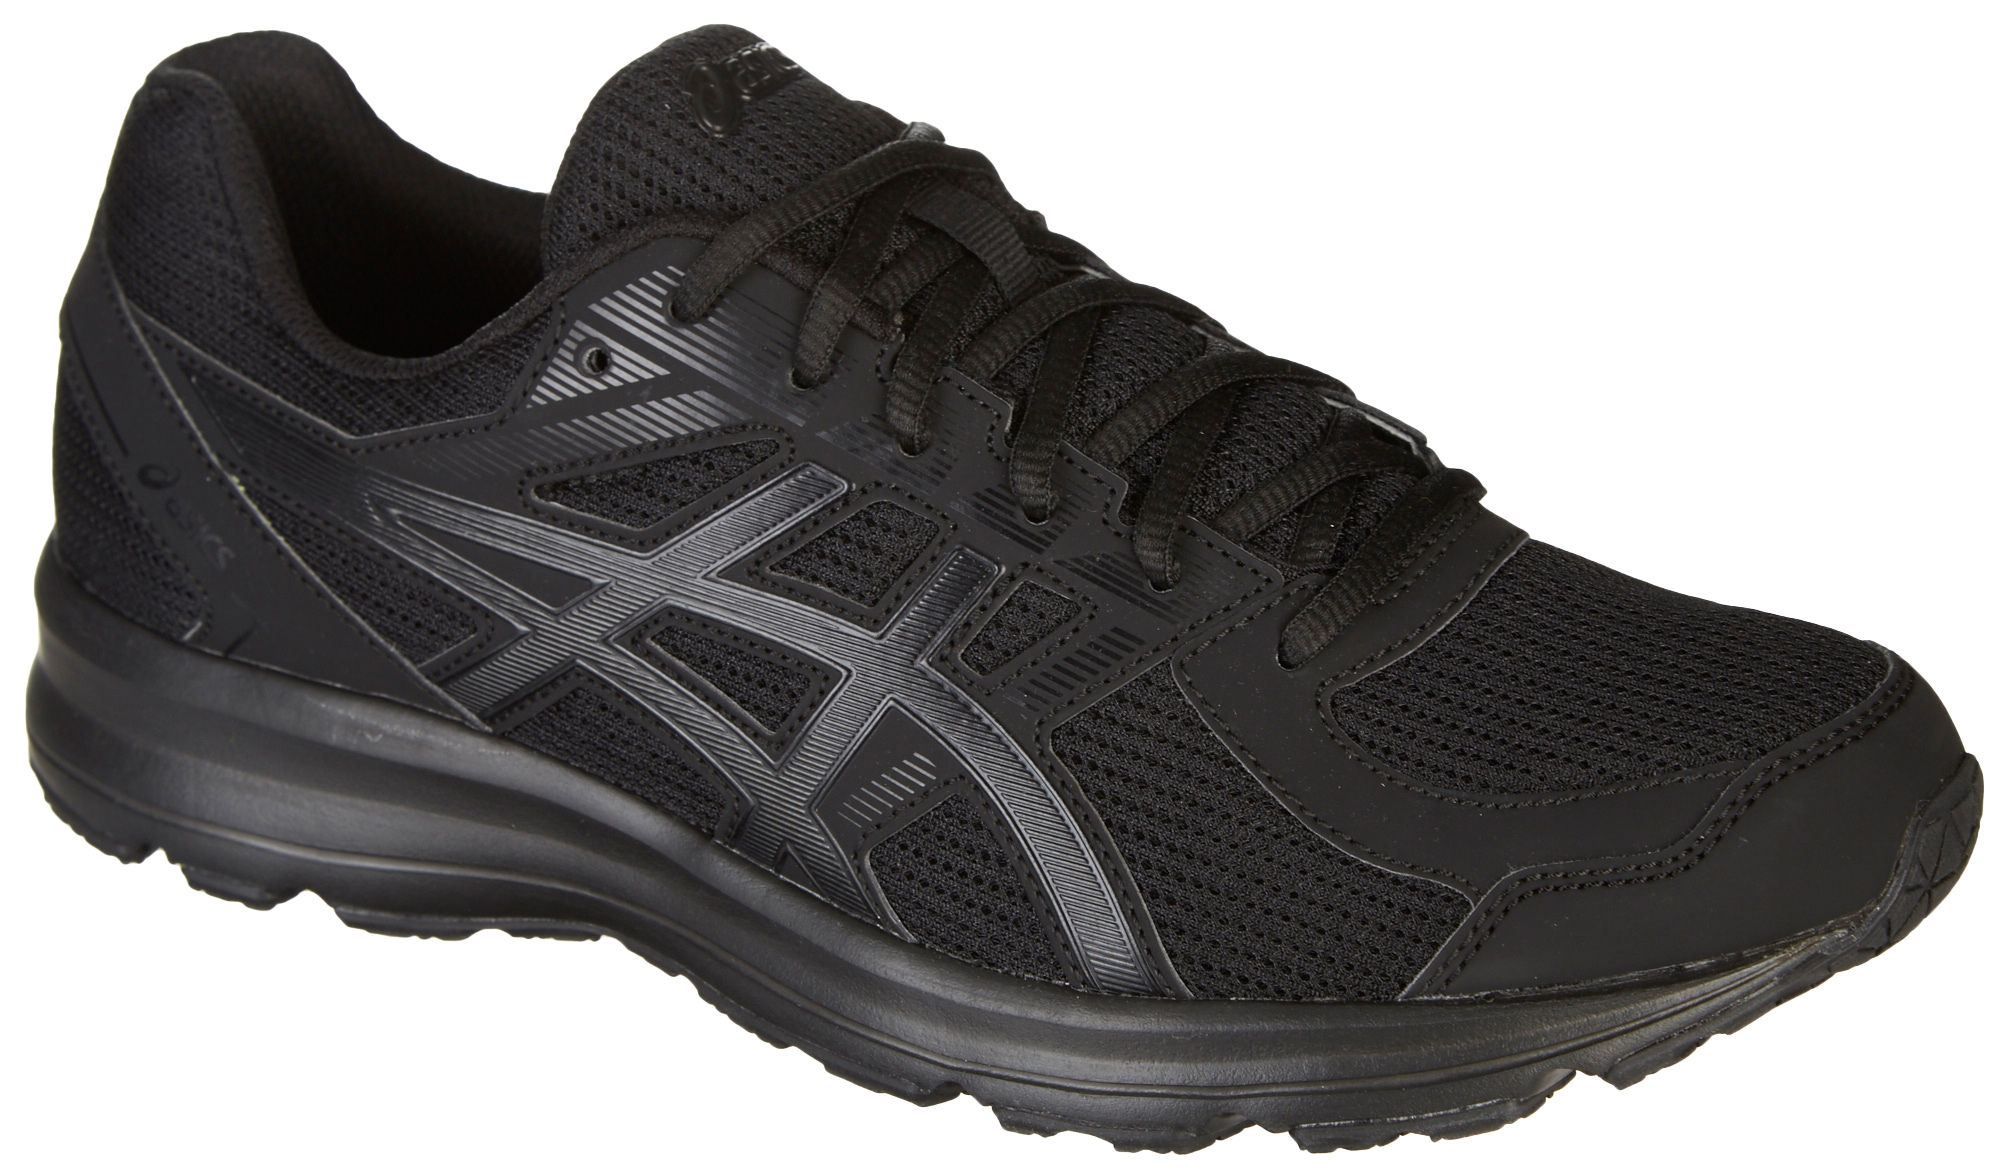 sale enjoy ASICS Men's Jolt Running Shoes cheap price pre order free shipping recommend hfX7CY0vC